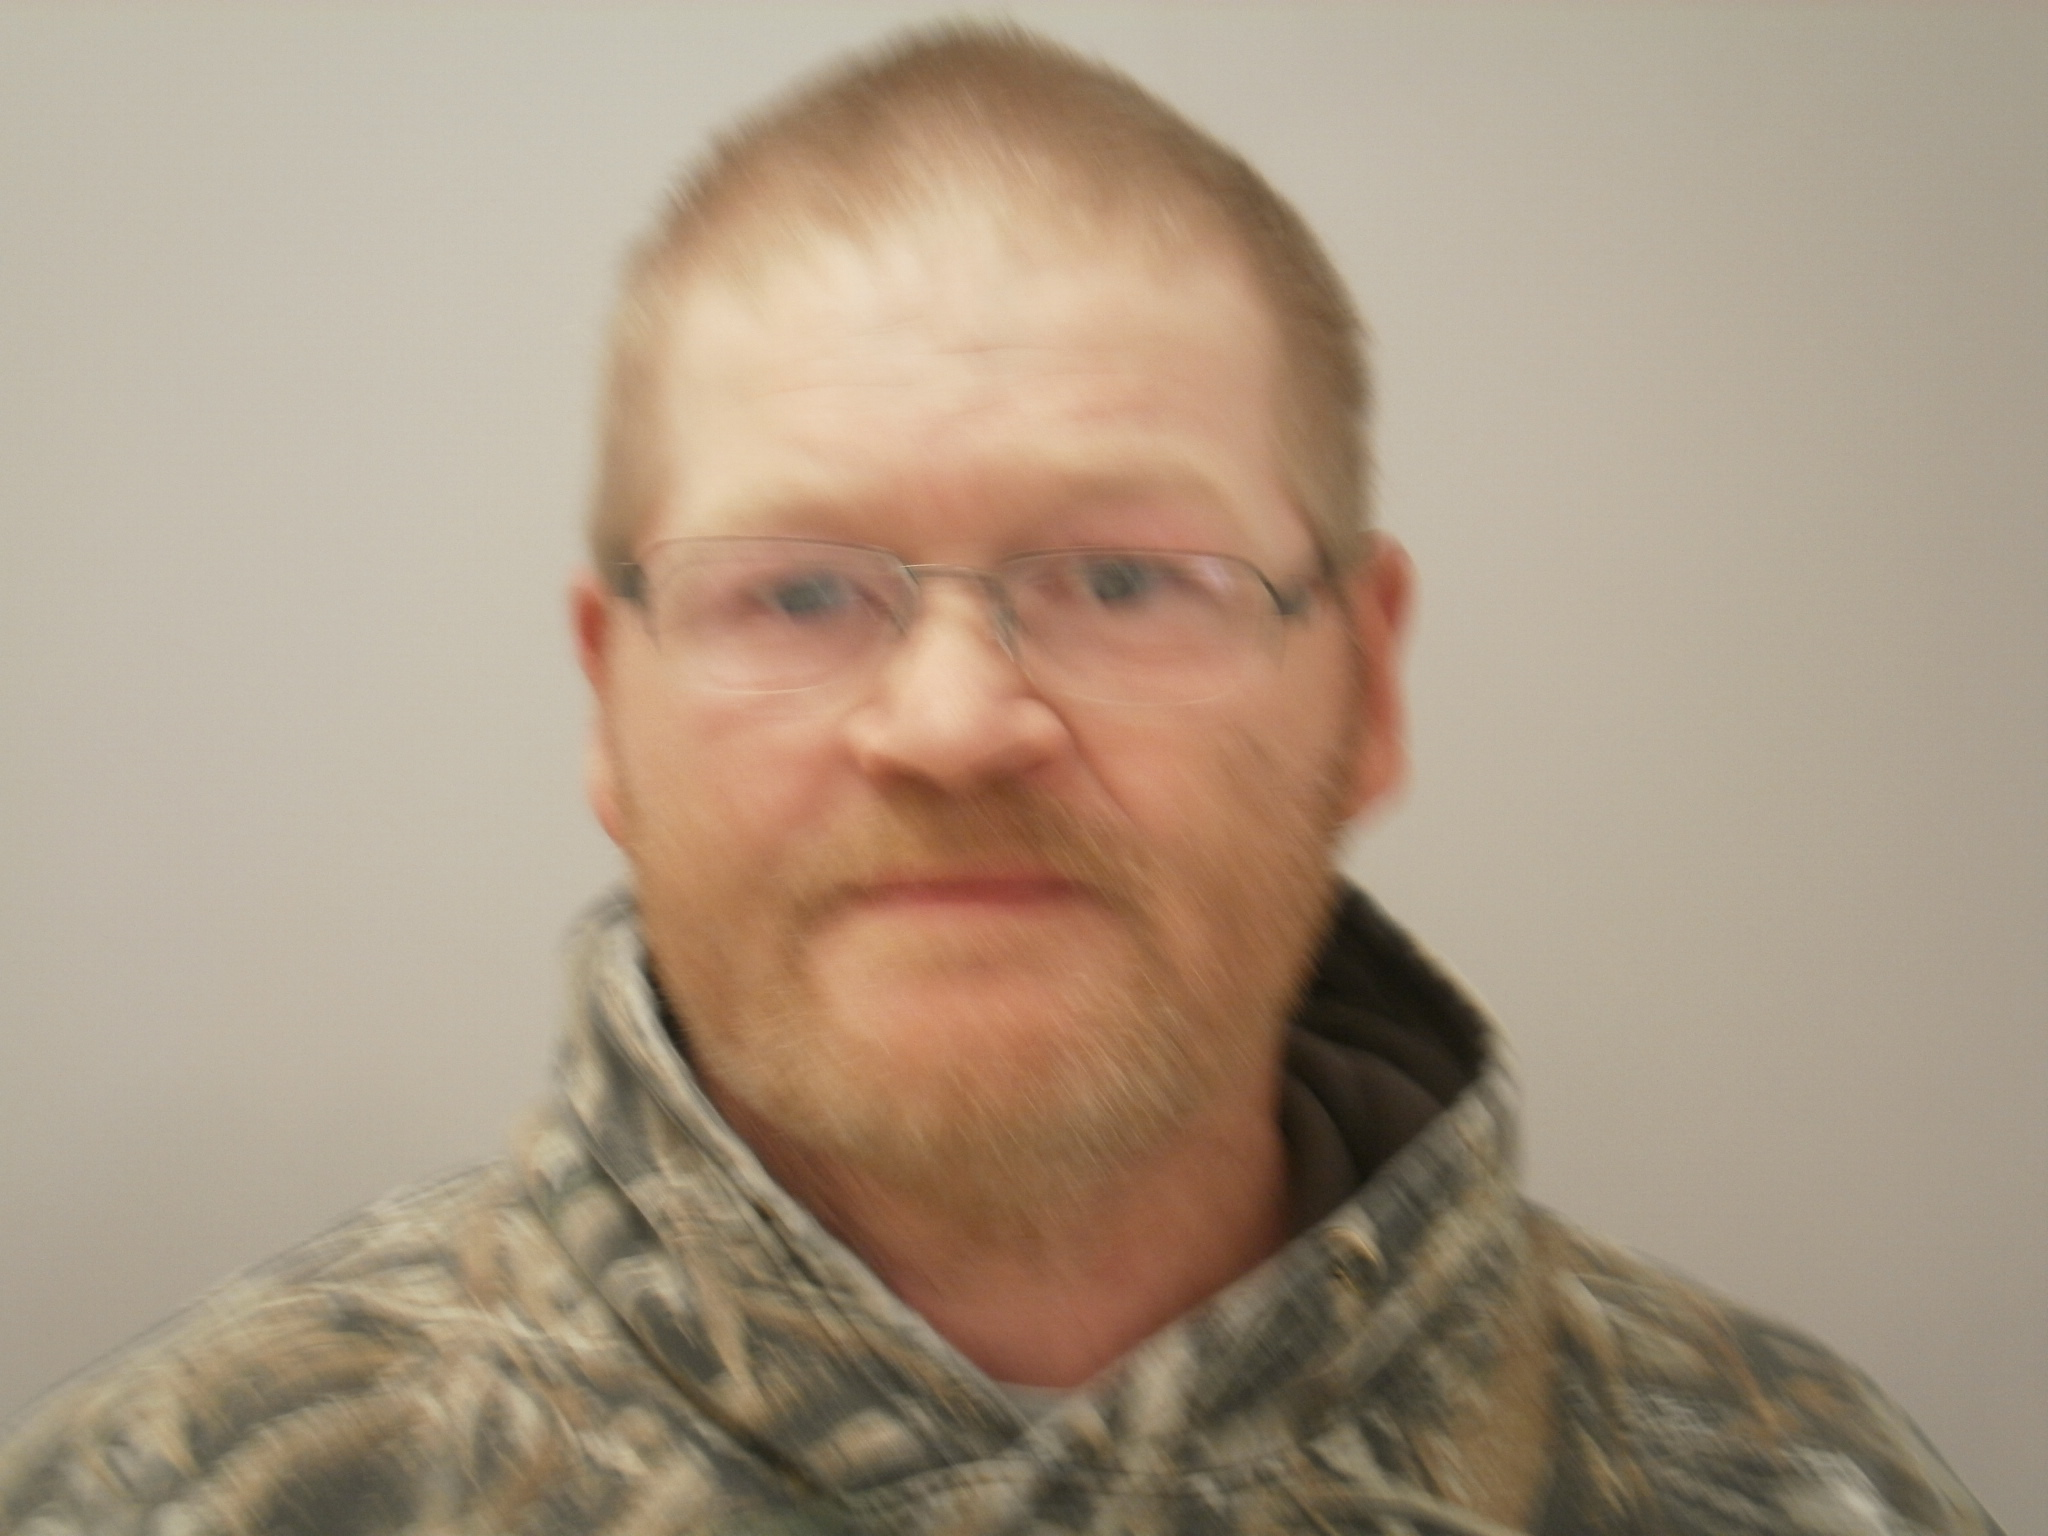 tennessee sex offender list county in Kentucky